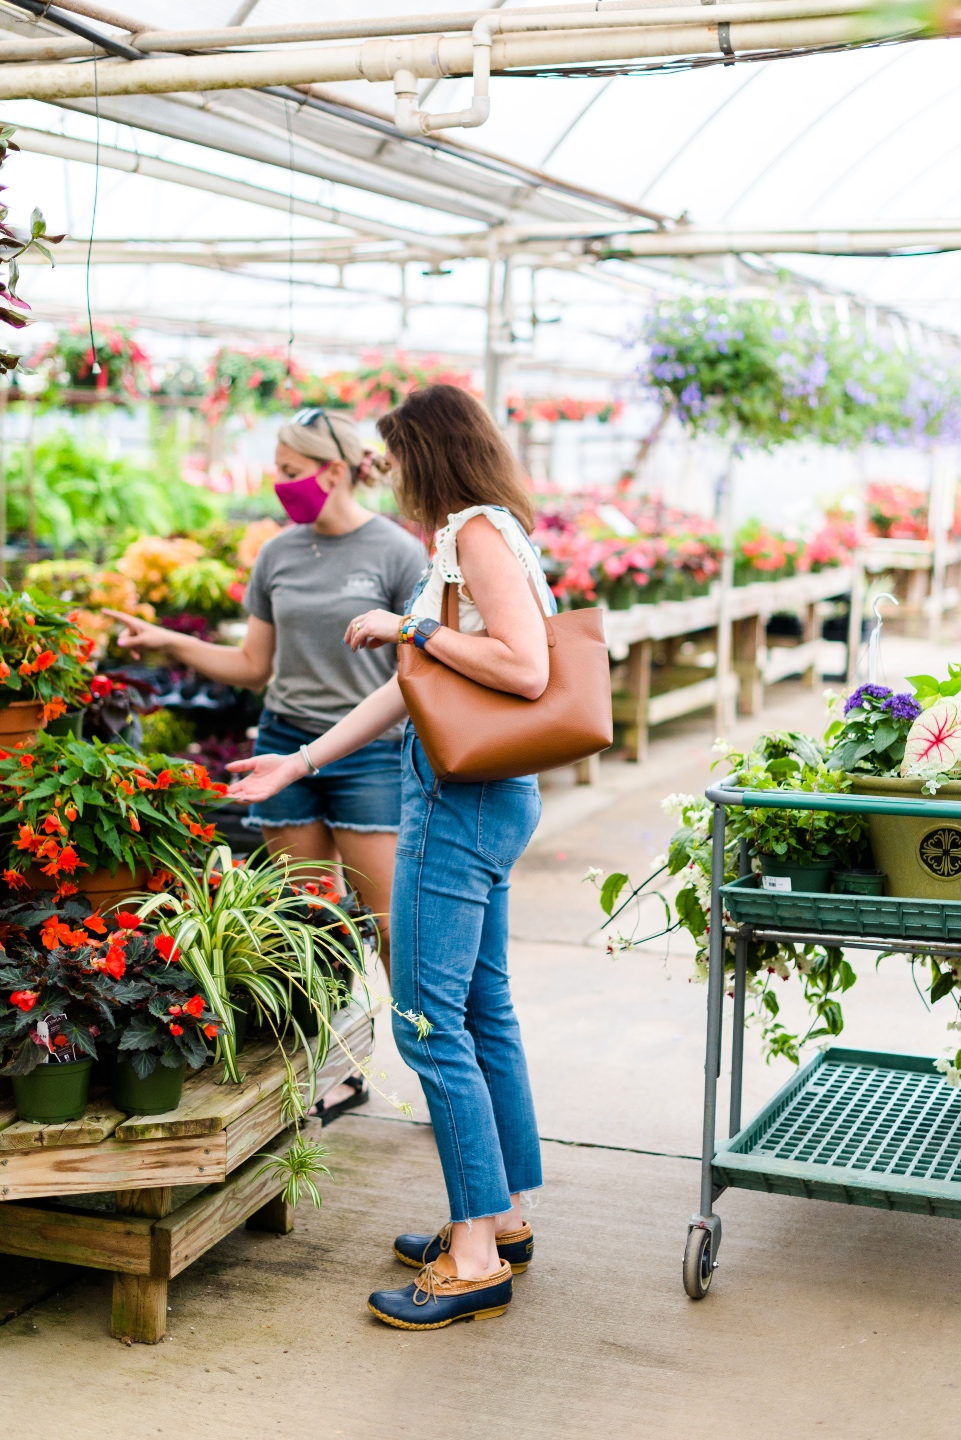 5 Spring Planting Tips with Fairview Garden Center - I'm Fixin' To - @imfixintoblog |Best Plants to Plant in Spring by popular NC lifestyle blog: image of two women looking at red floral plants a the Fairview Garden Center.